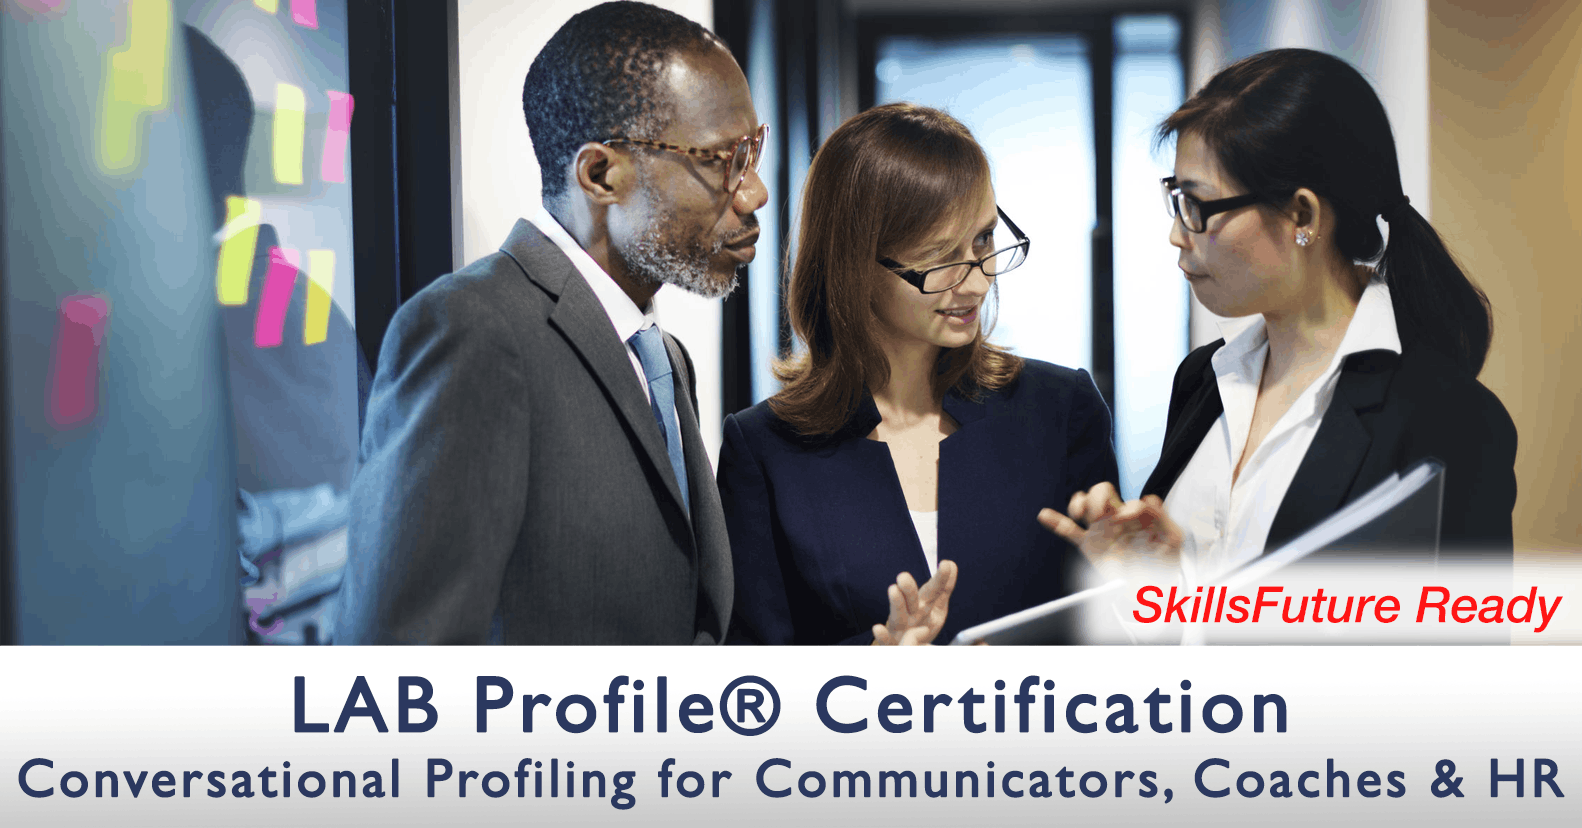 The LAB Profile® Certification Course